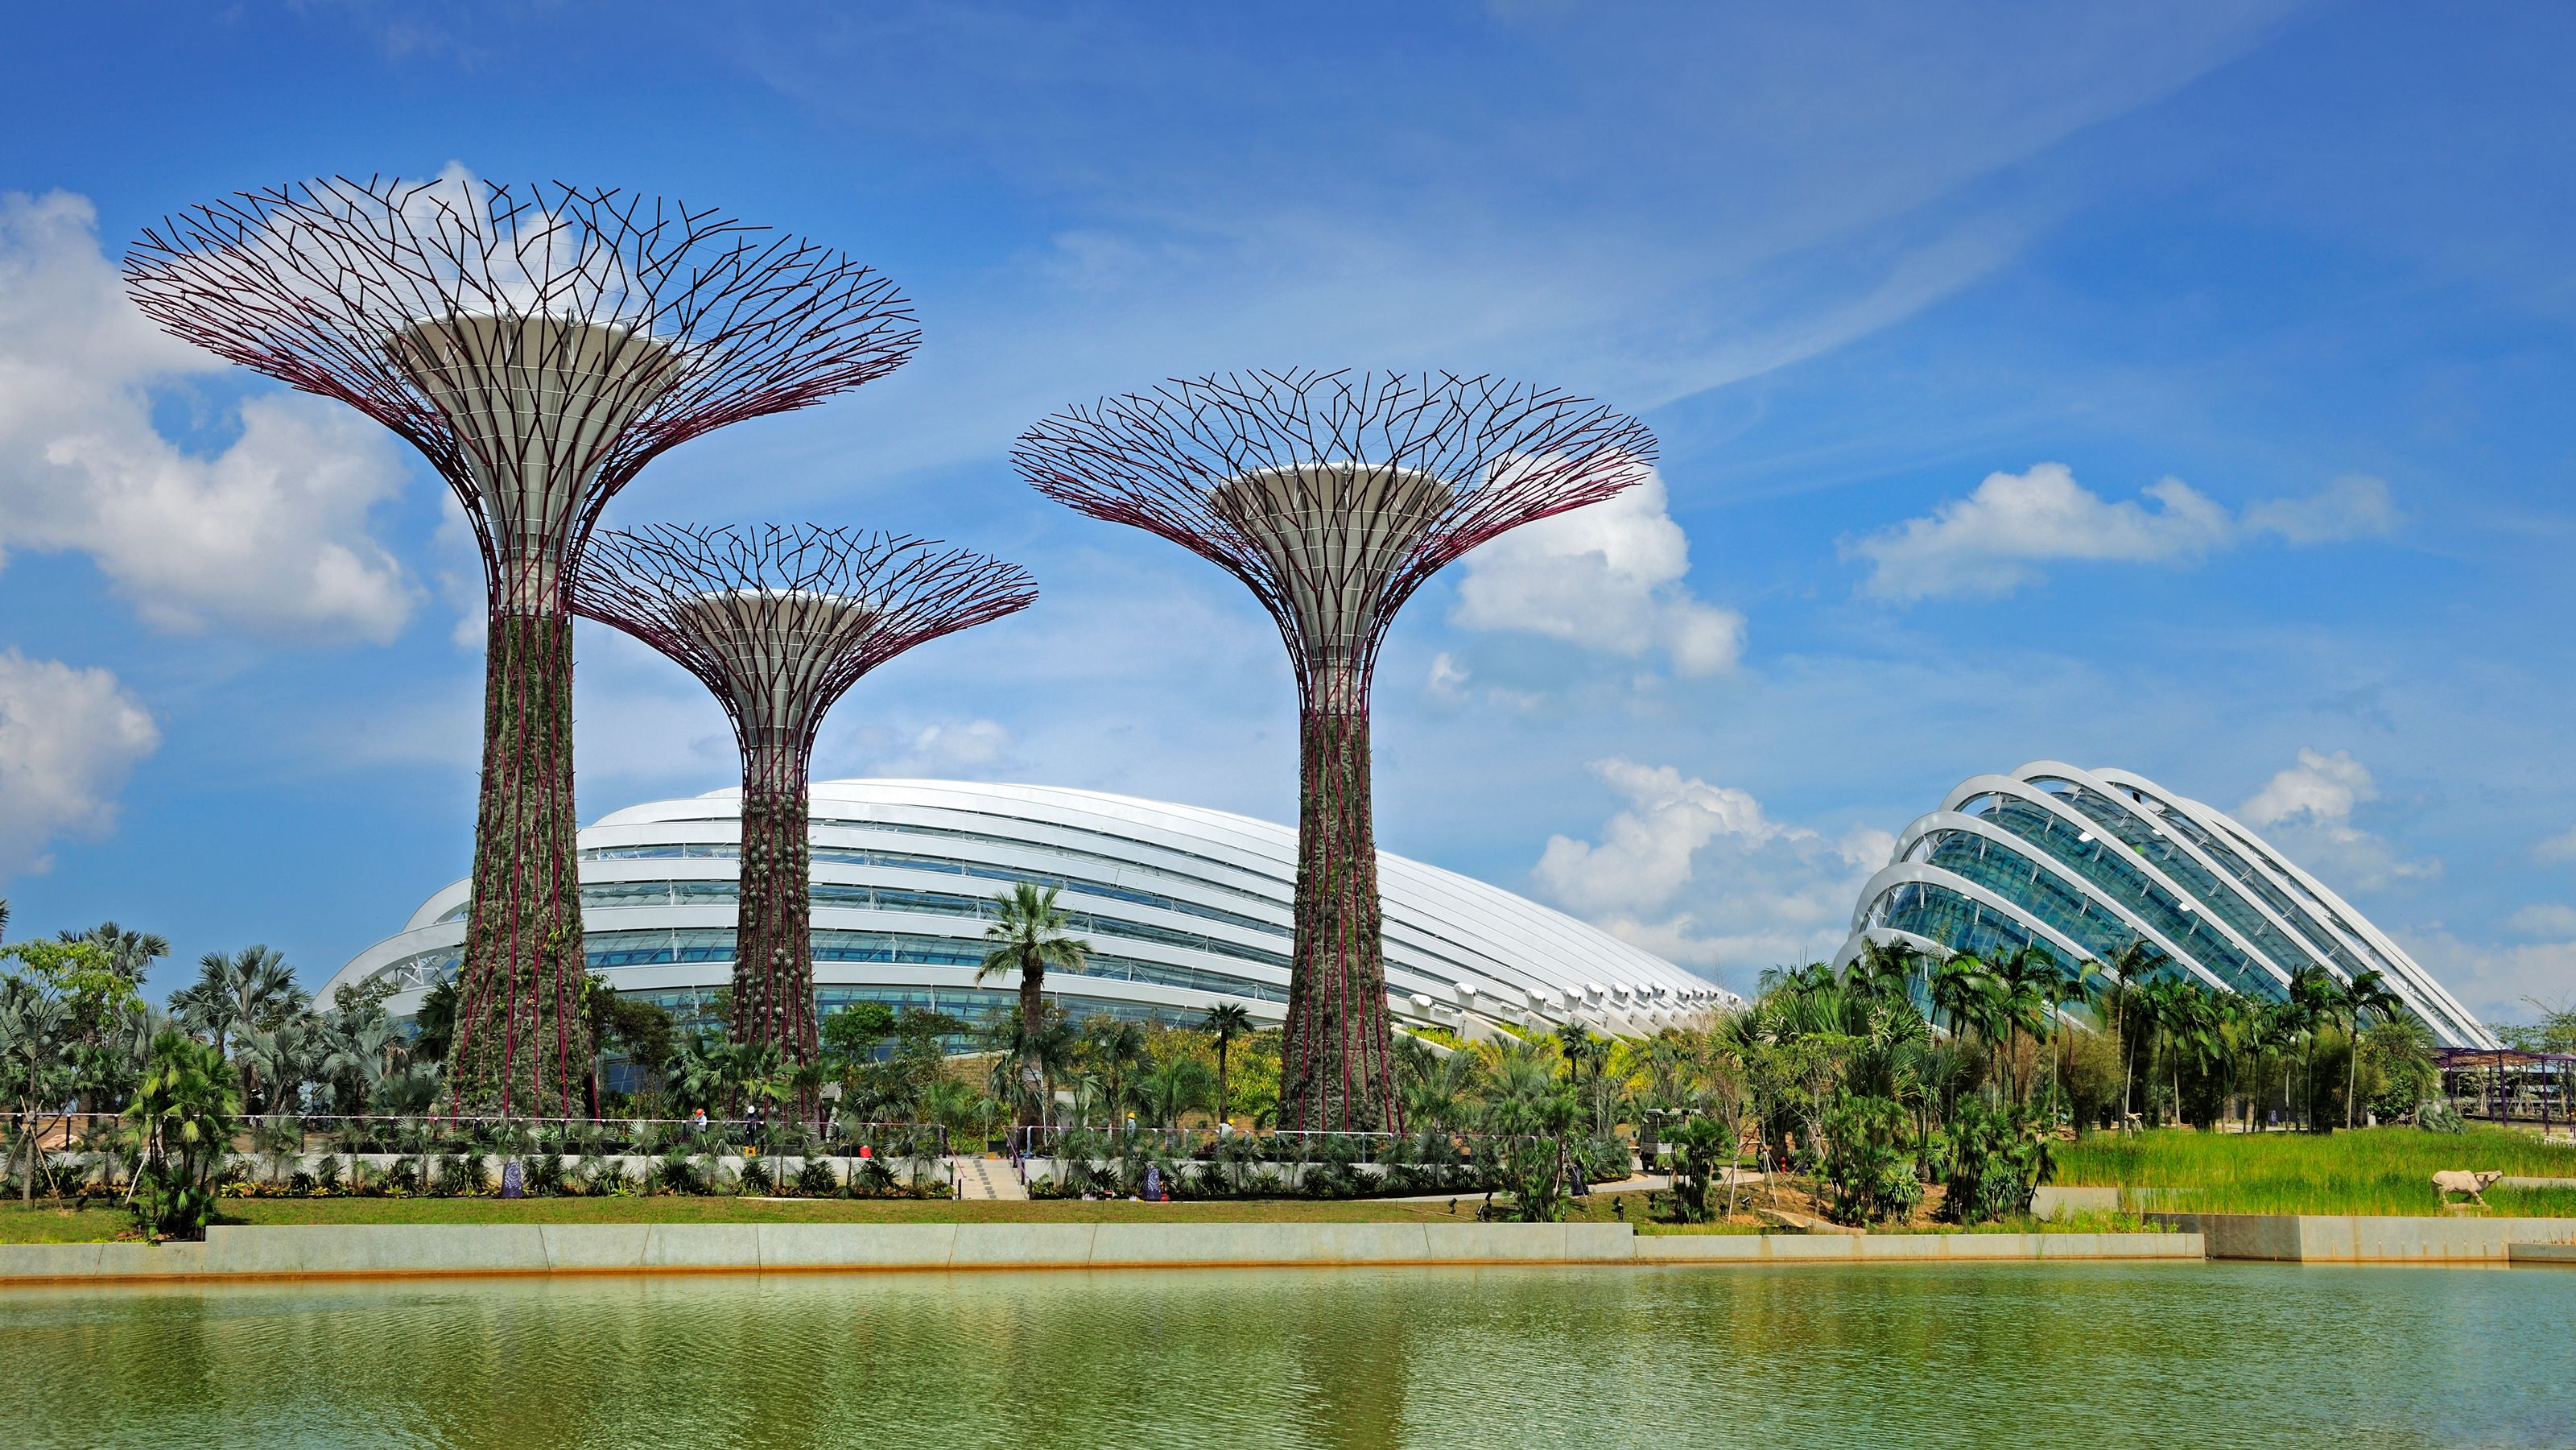 Fast-Track Gardens by the Bay Ticket